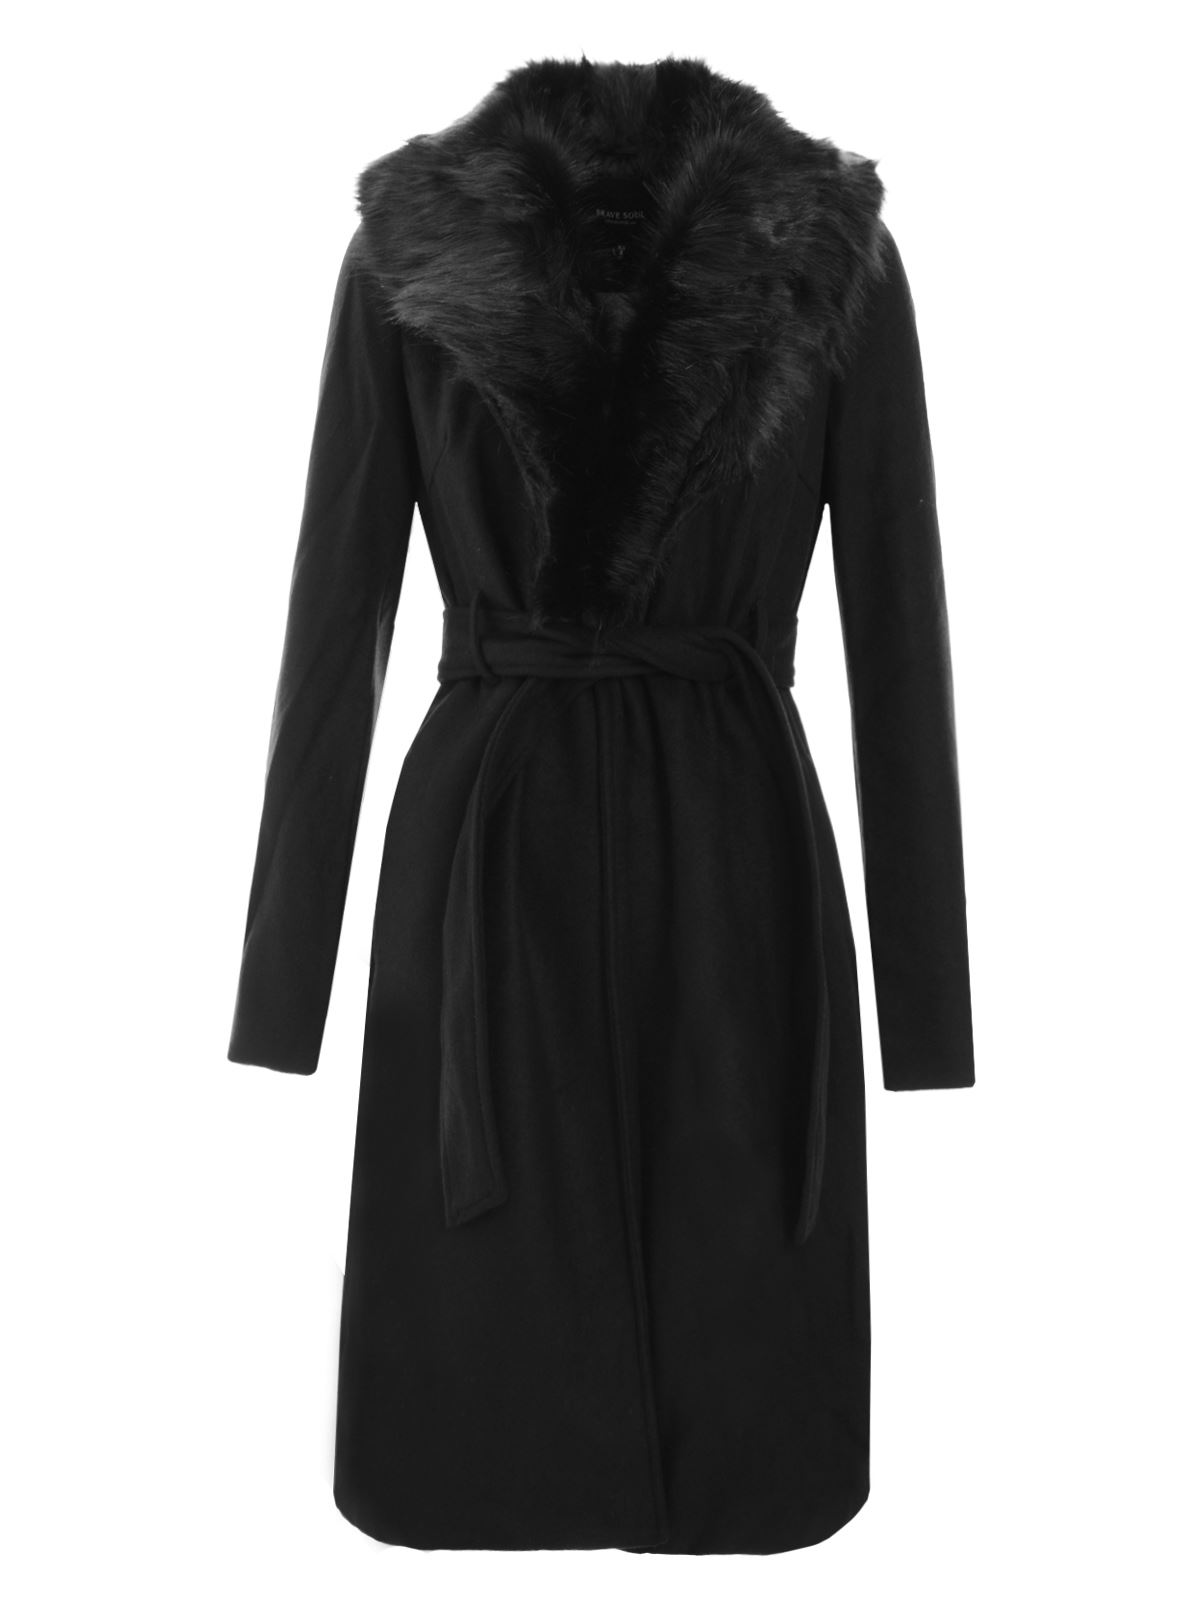 Find great deals on eBay for belted wool coat. Shop with confidence.